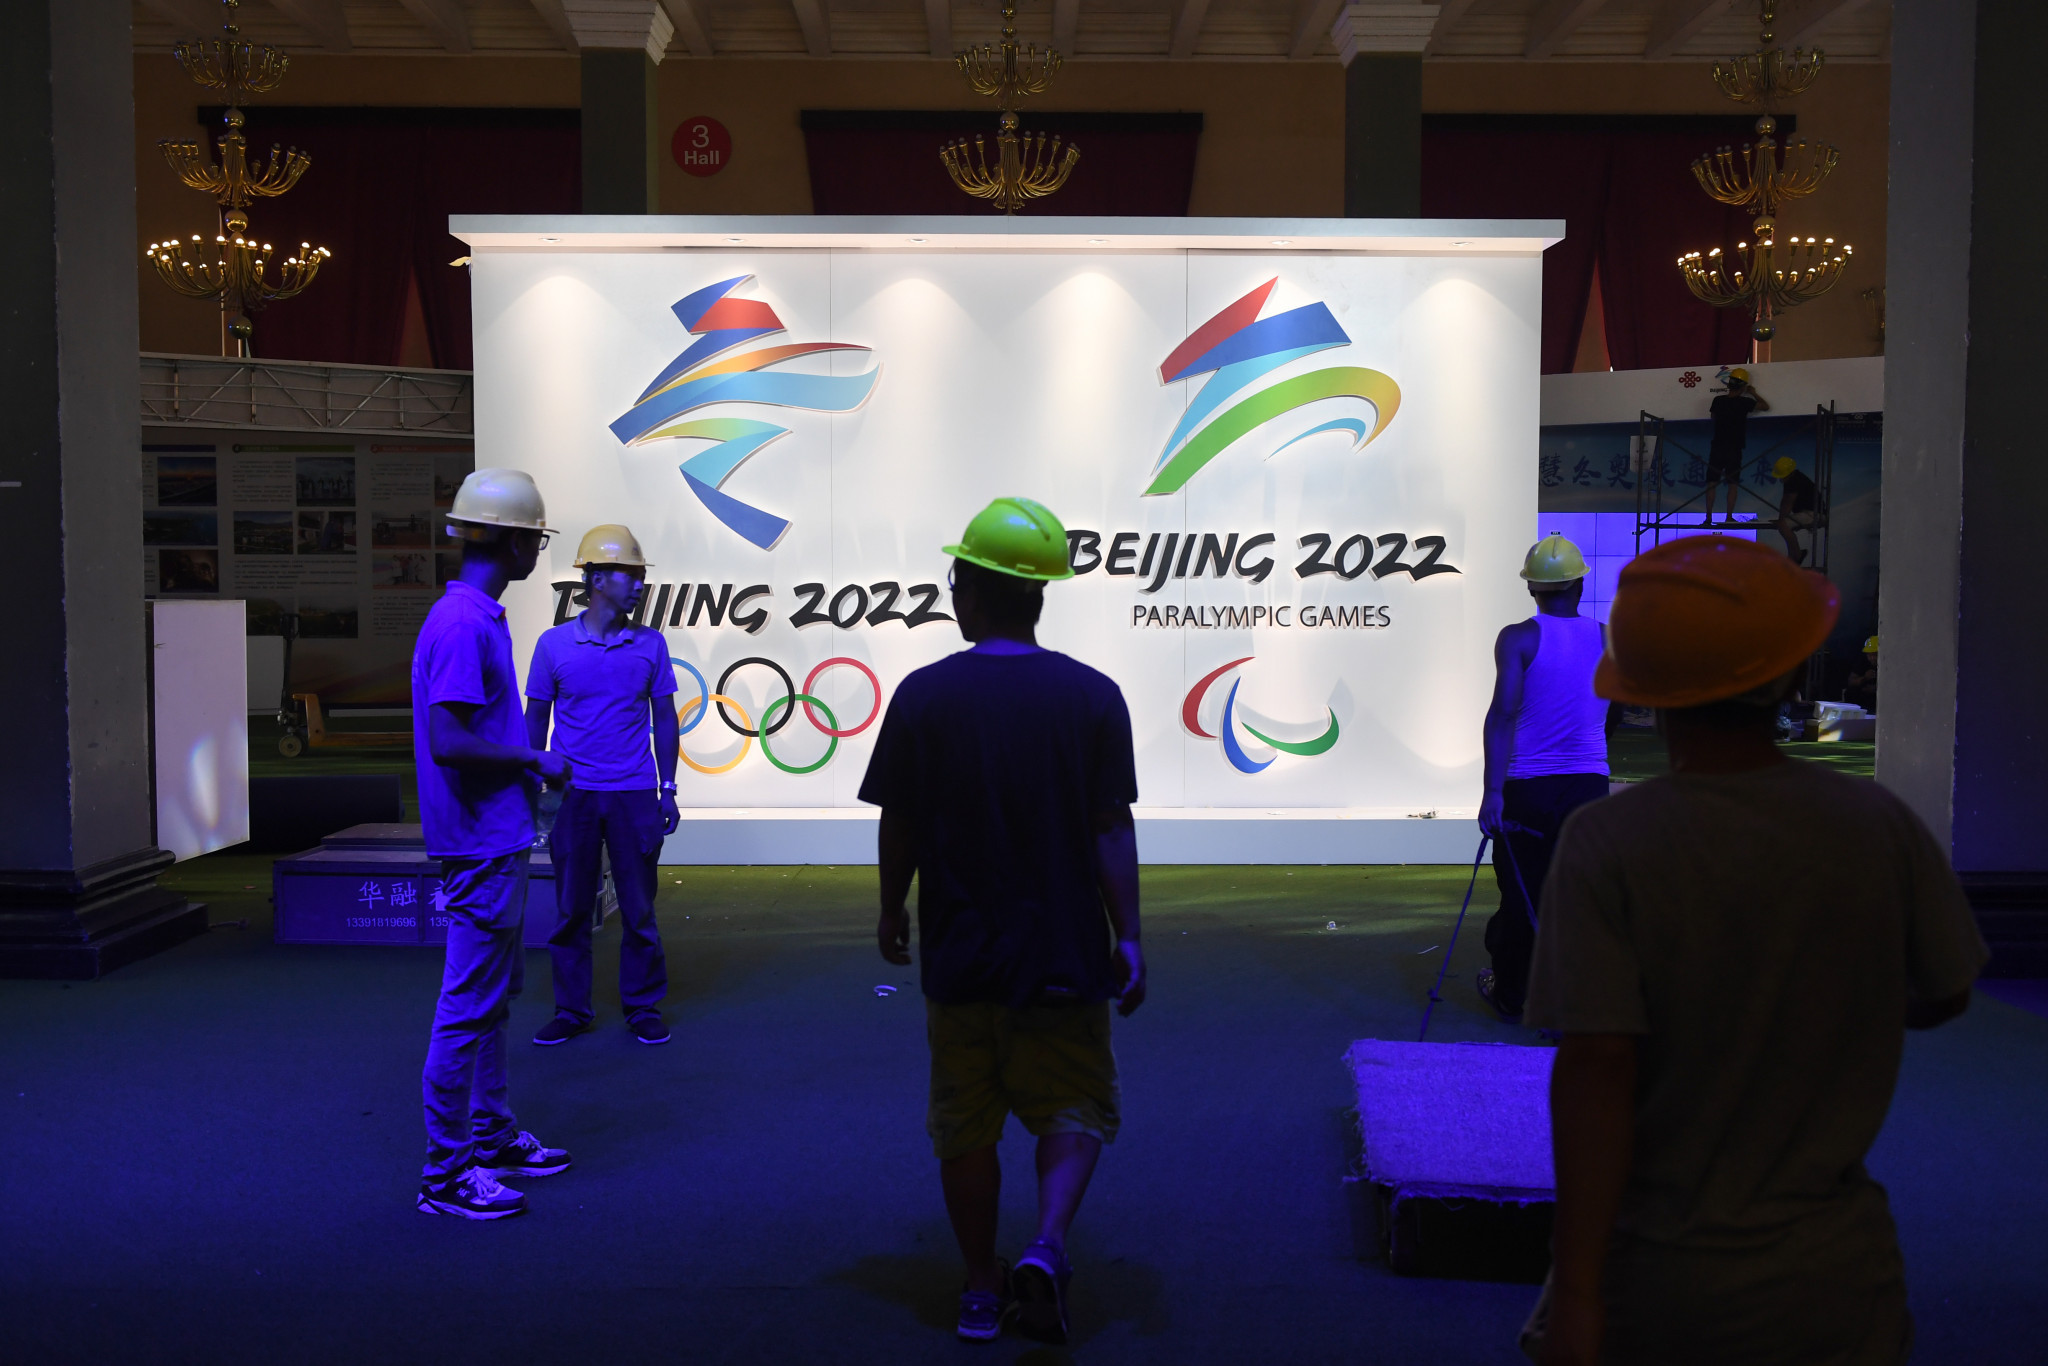 In 2022 Beijing will become the first city to have hosted both the Summer and Winter Olympic and Paralympic Games ©Getty Images